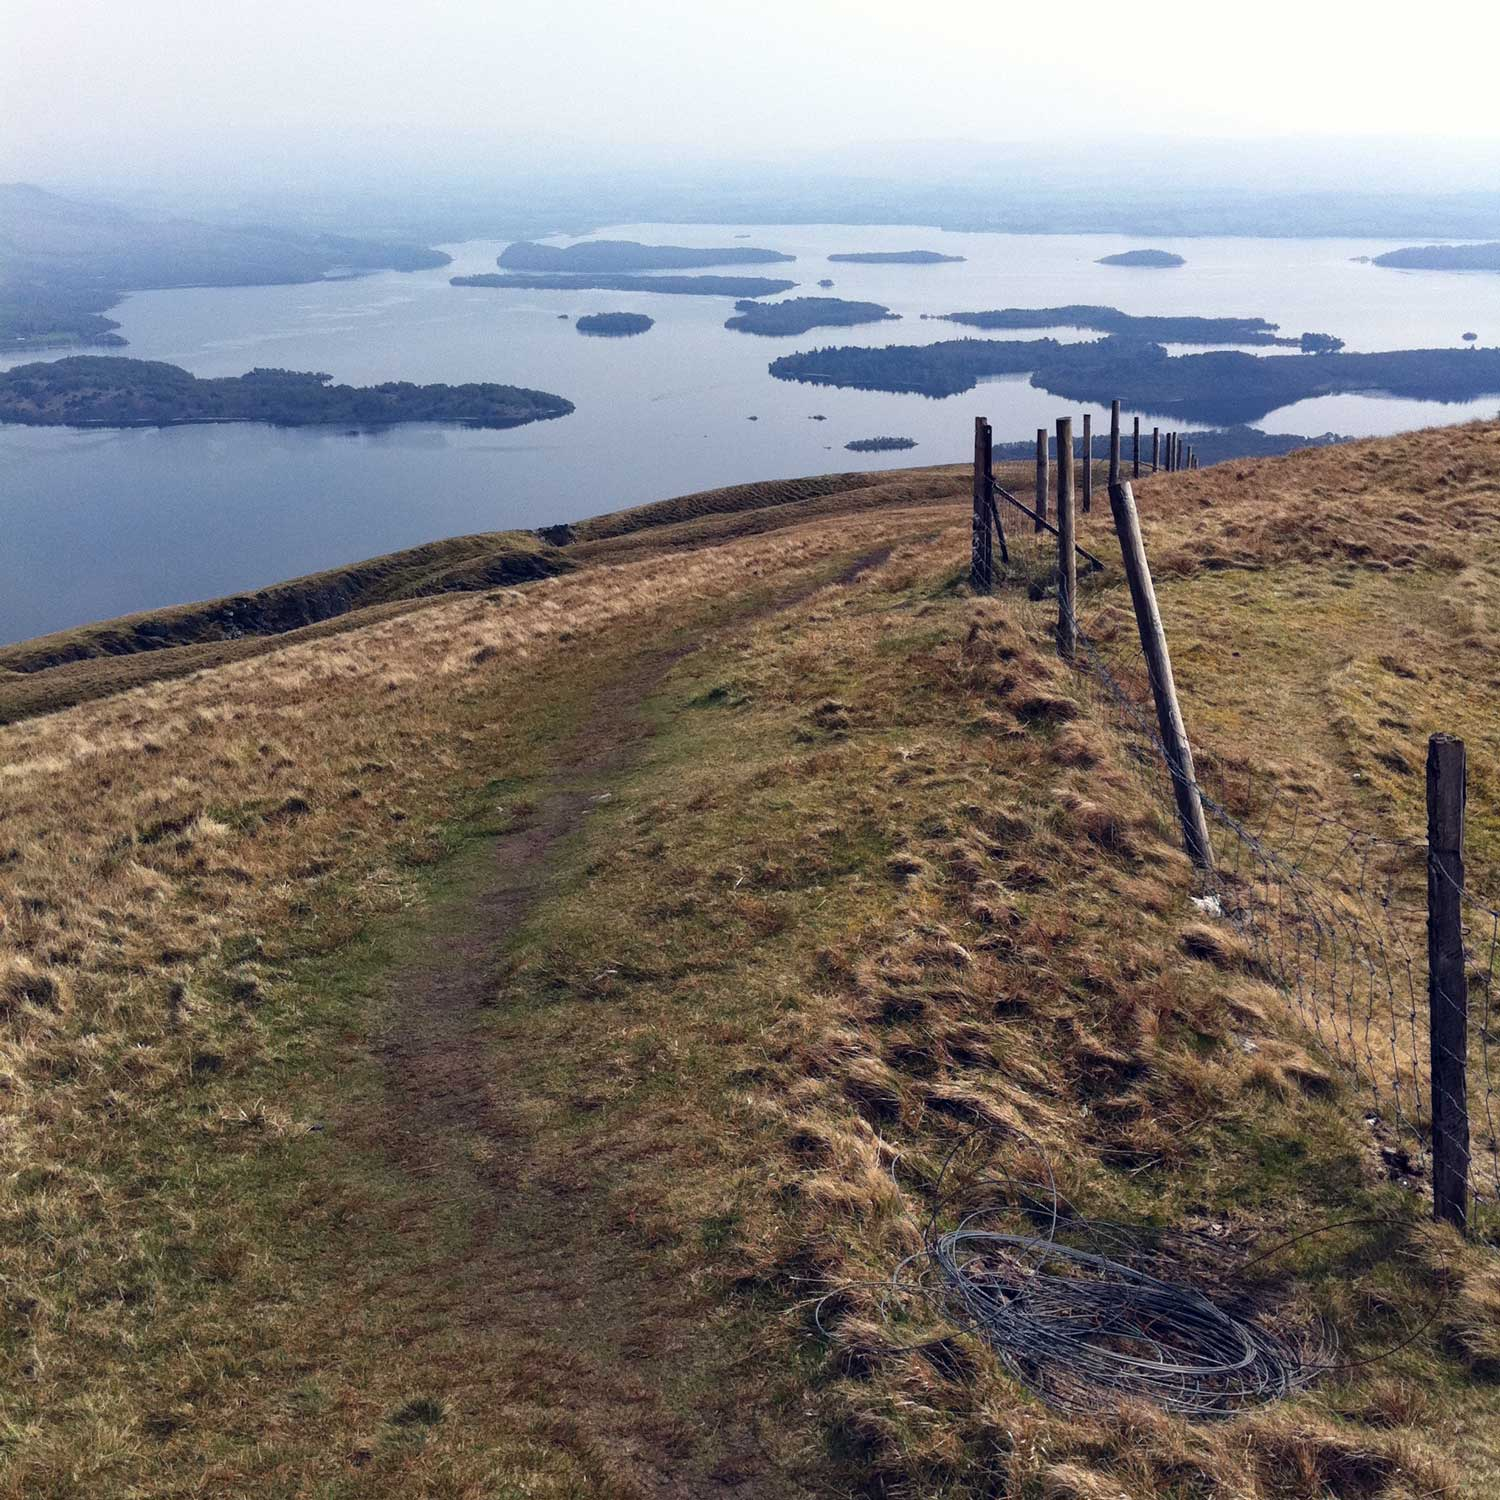 Just before jumping the style near the top, a great view of Loch Lomond.